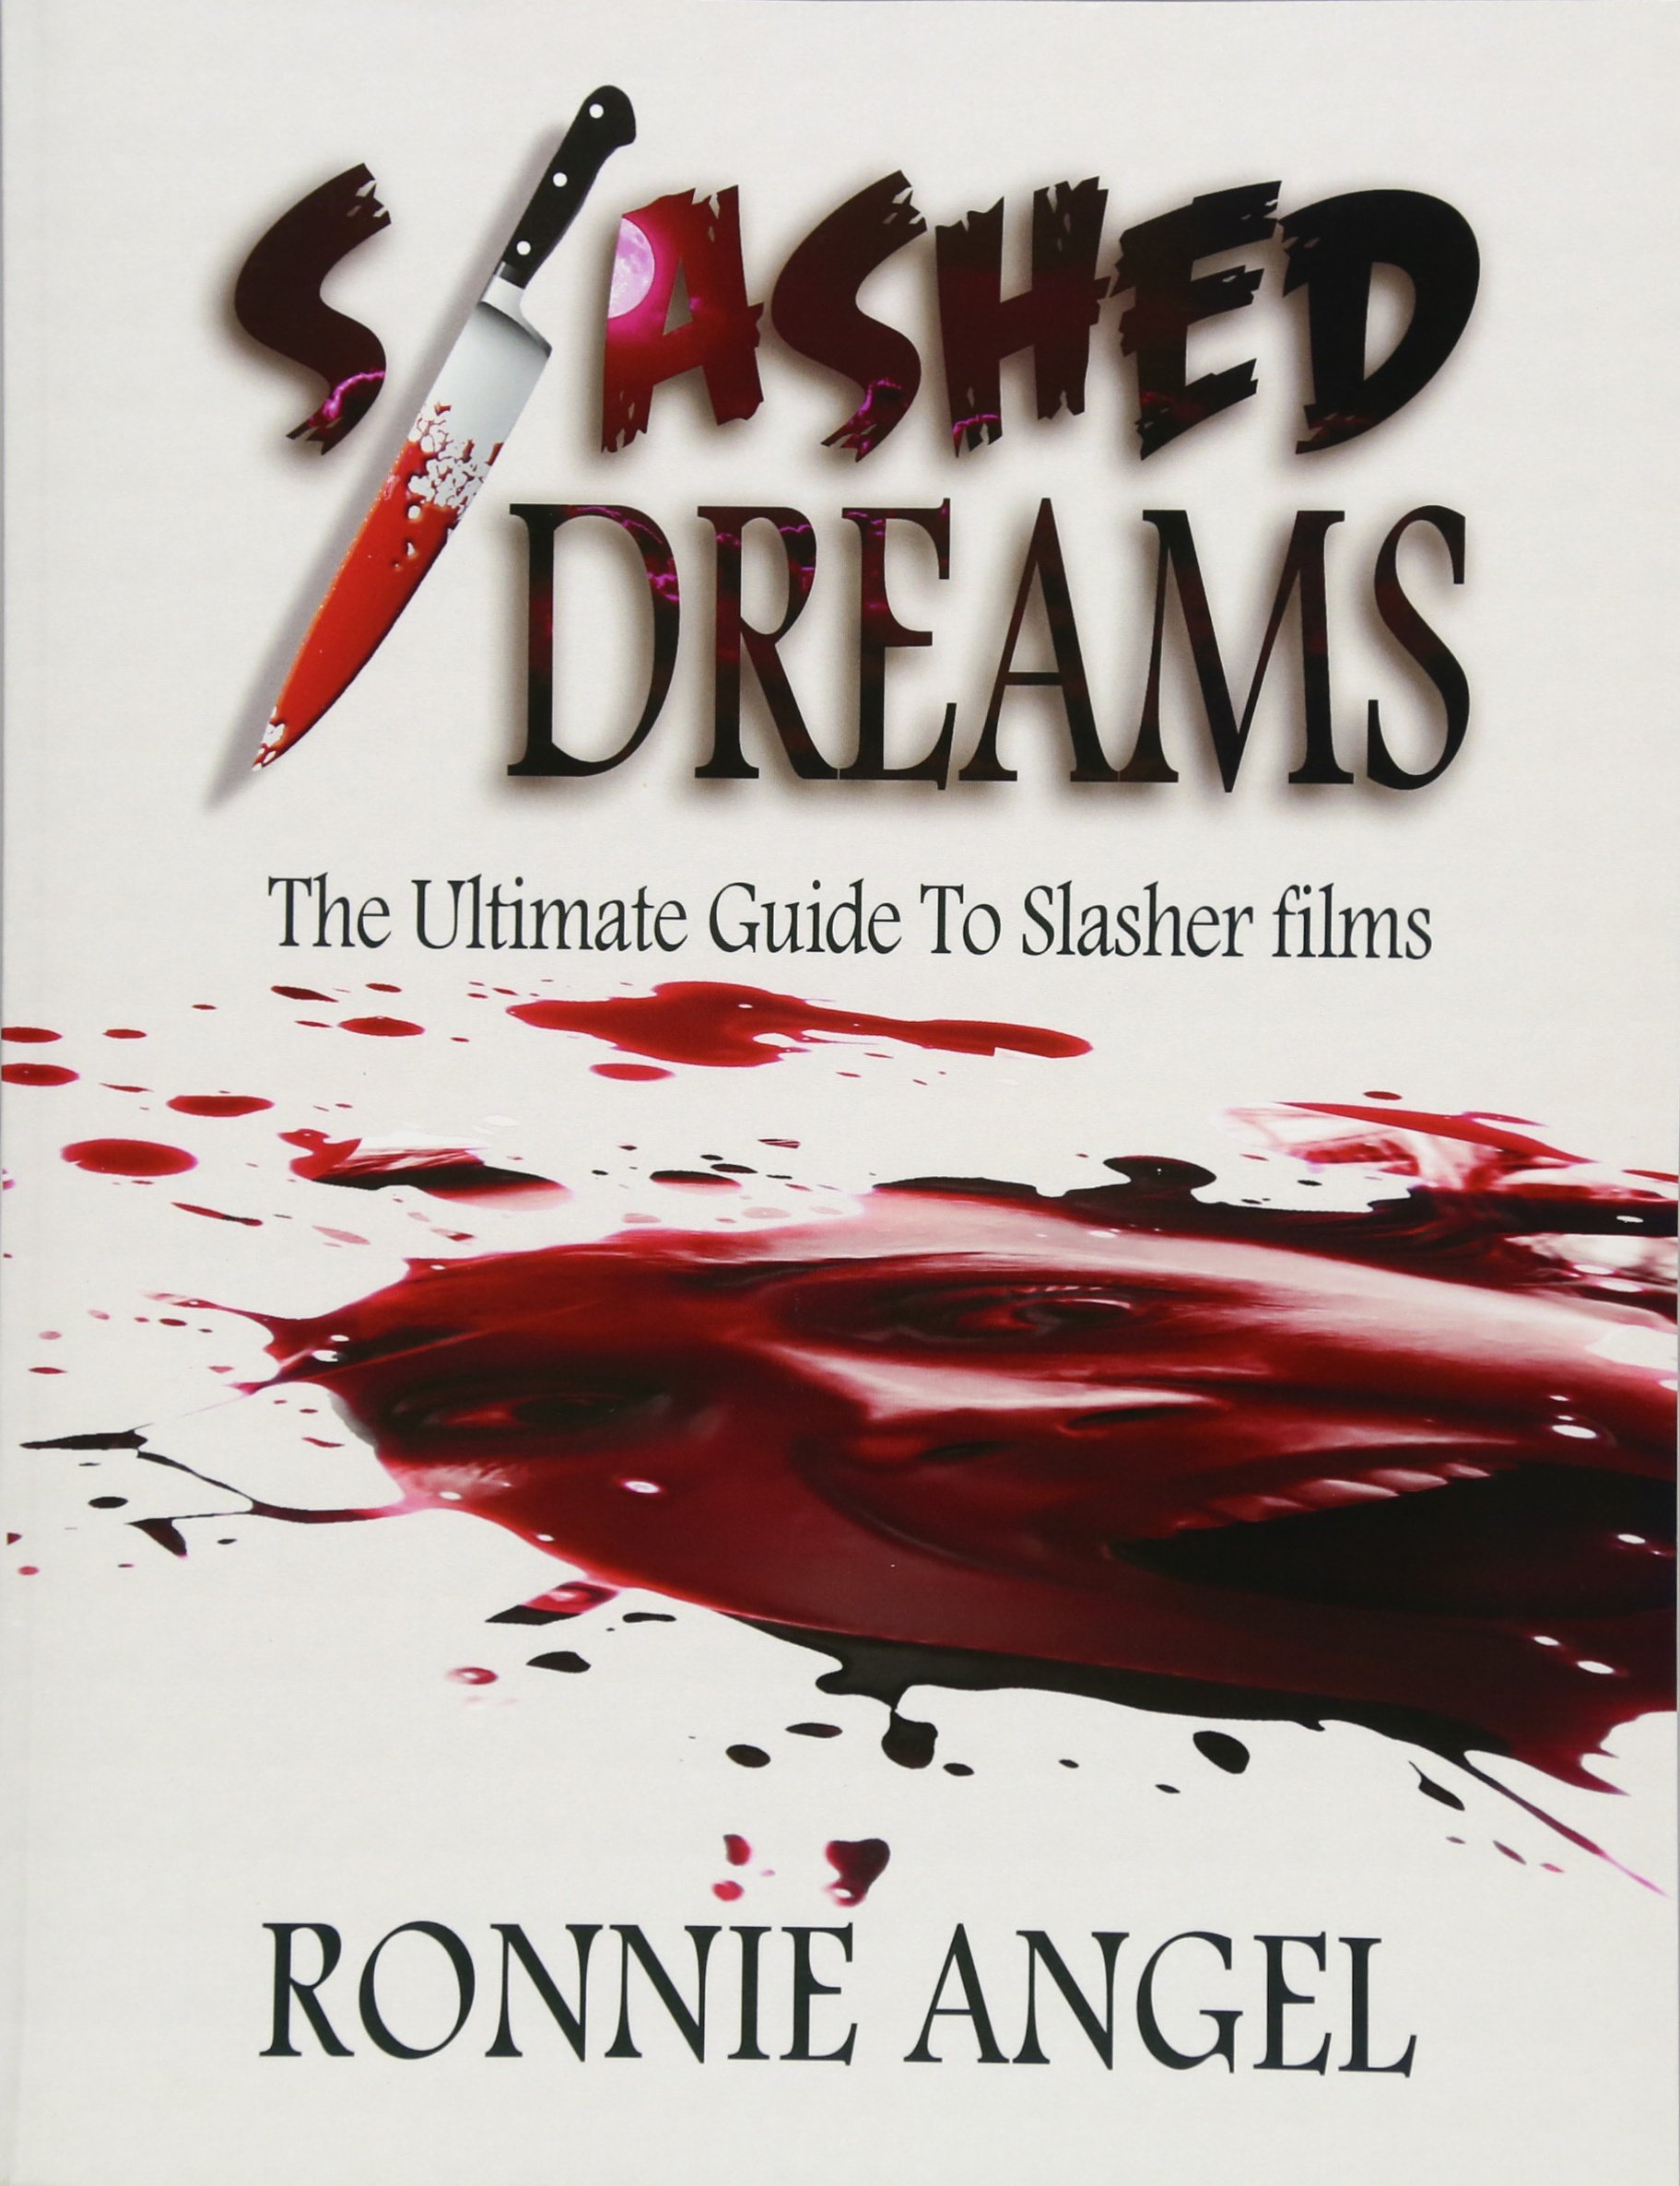 Slashed Dreams: The Ultimate Guide to Slasher Movies Paperback – October  28, 2015